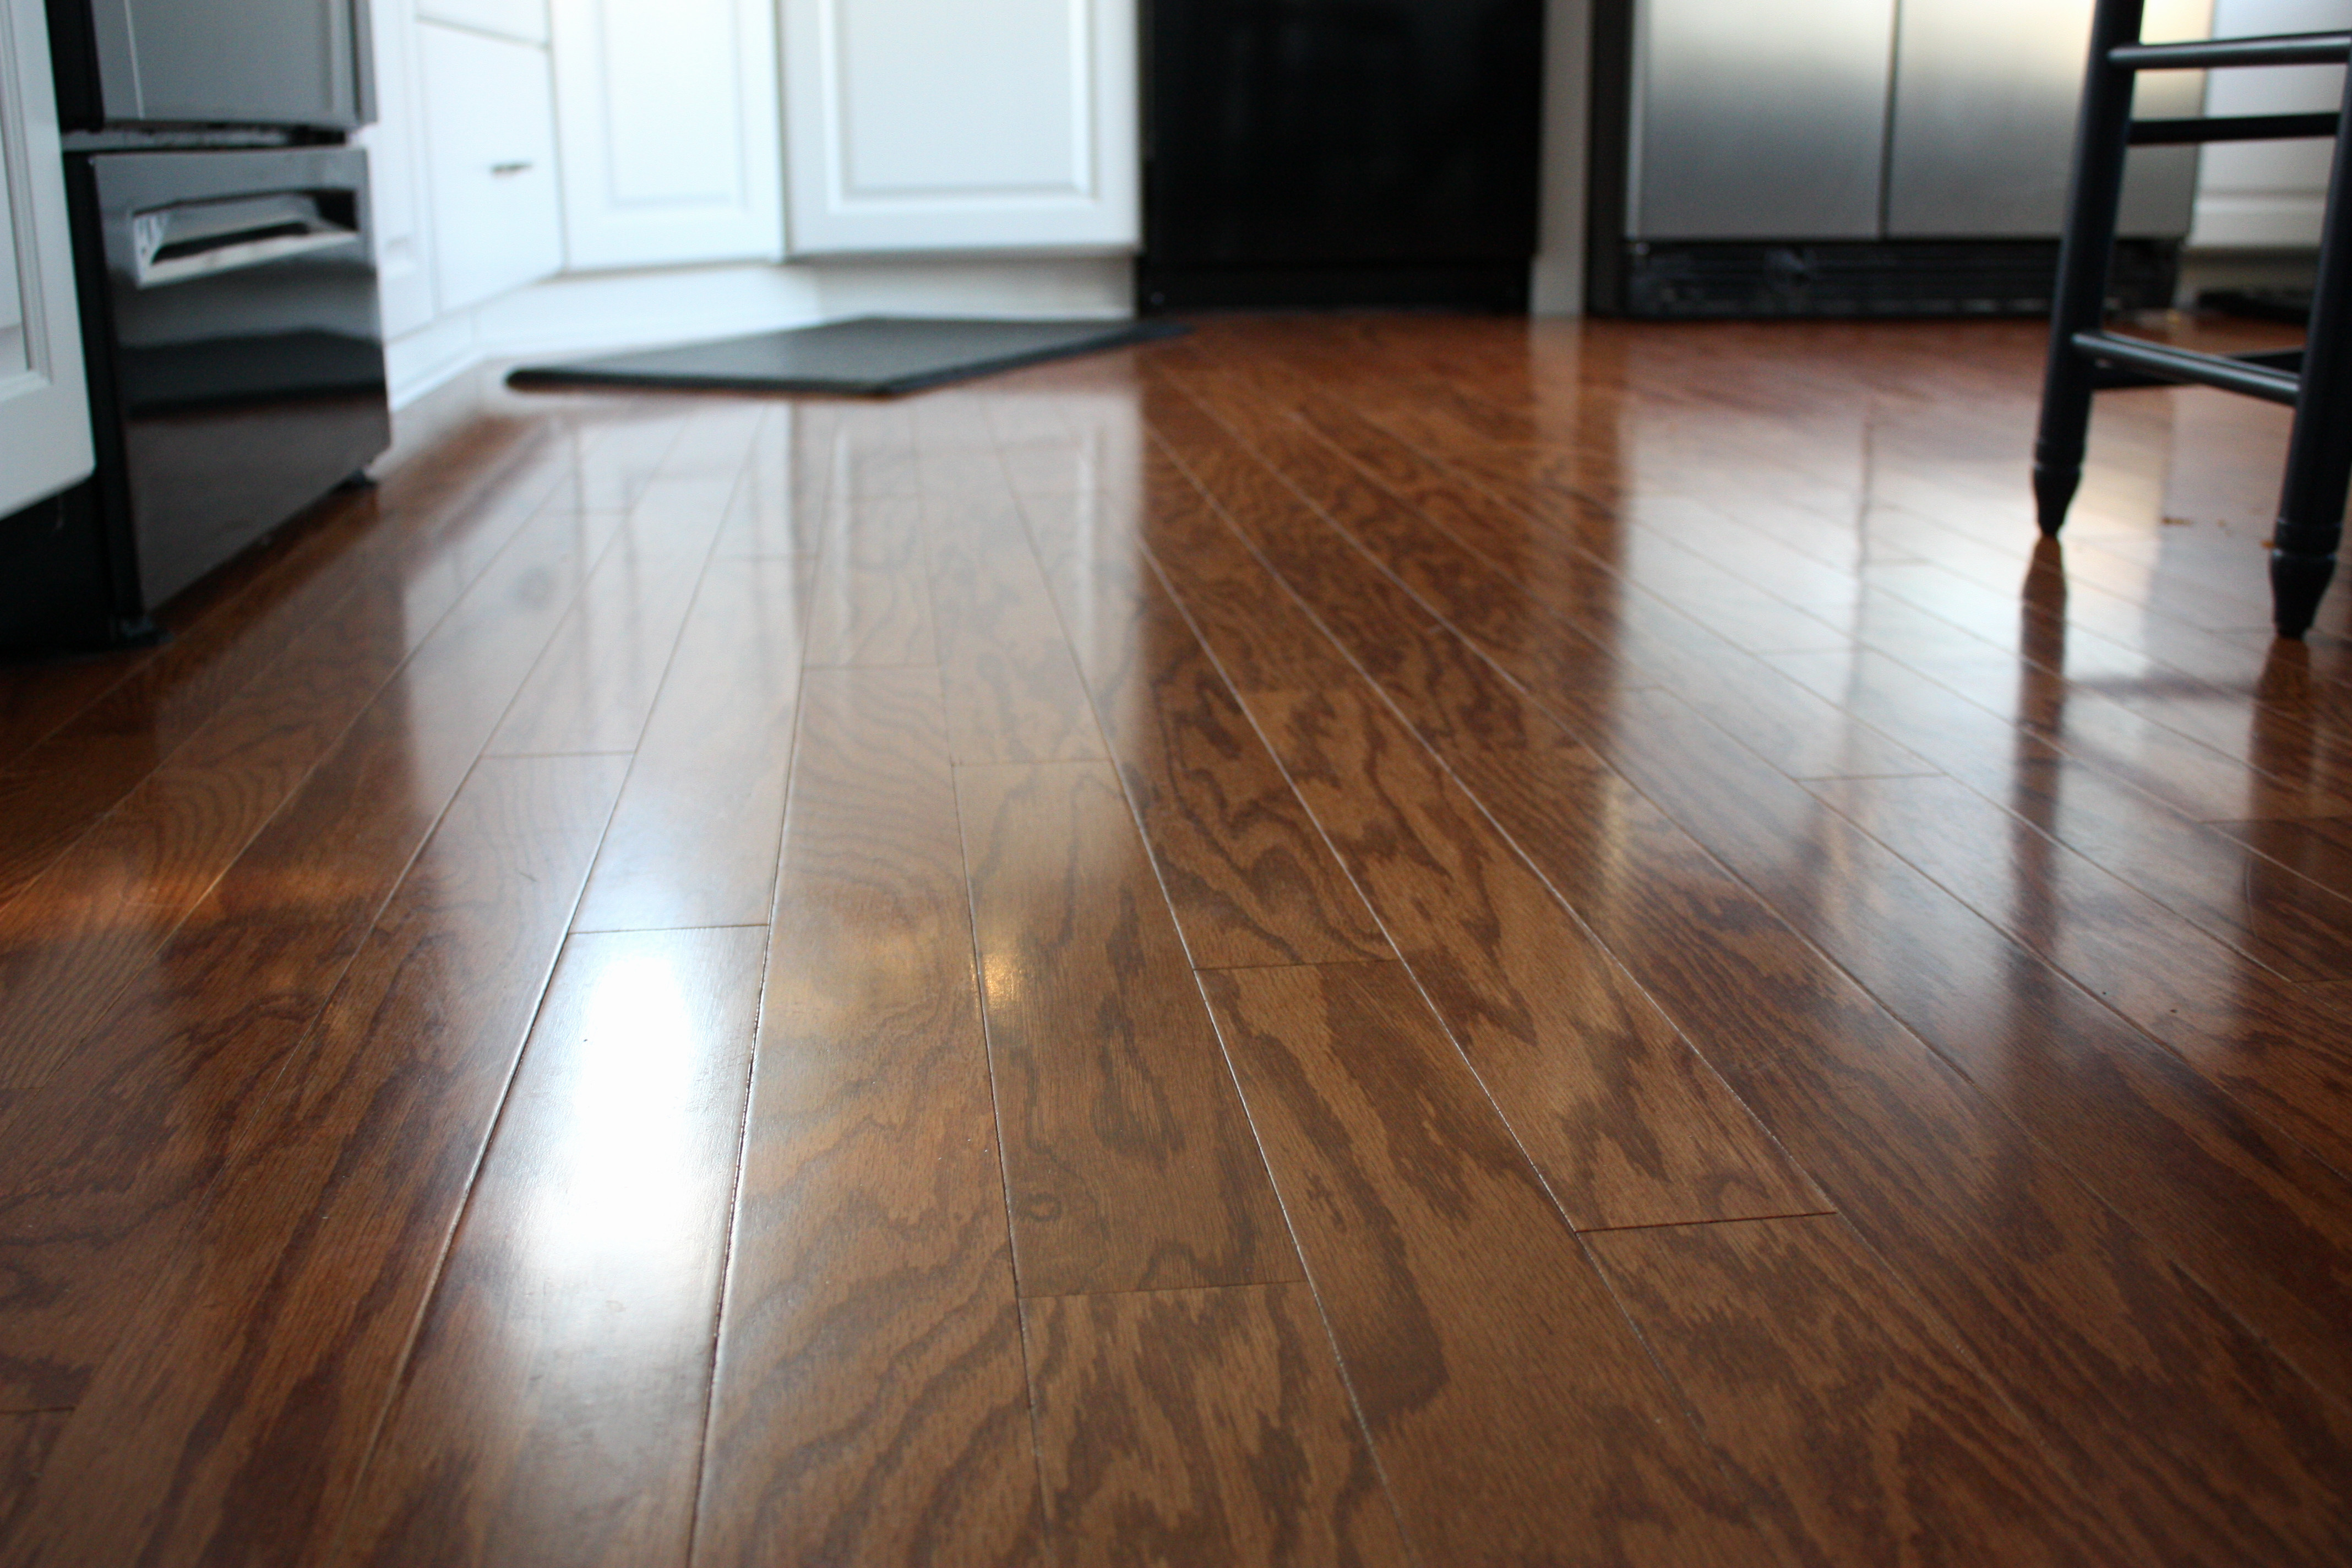 hand scraped acacia solid hardwood flooring of the wood maker page 6 wood wallpaper within floor floorod cleaning hardwood carpet lake forest il rare image ideas of wood floor steam cleaner